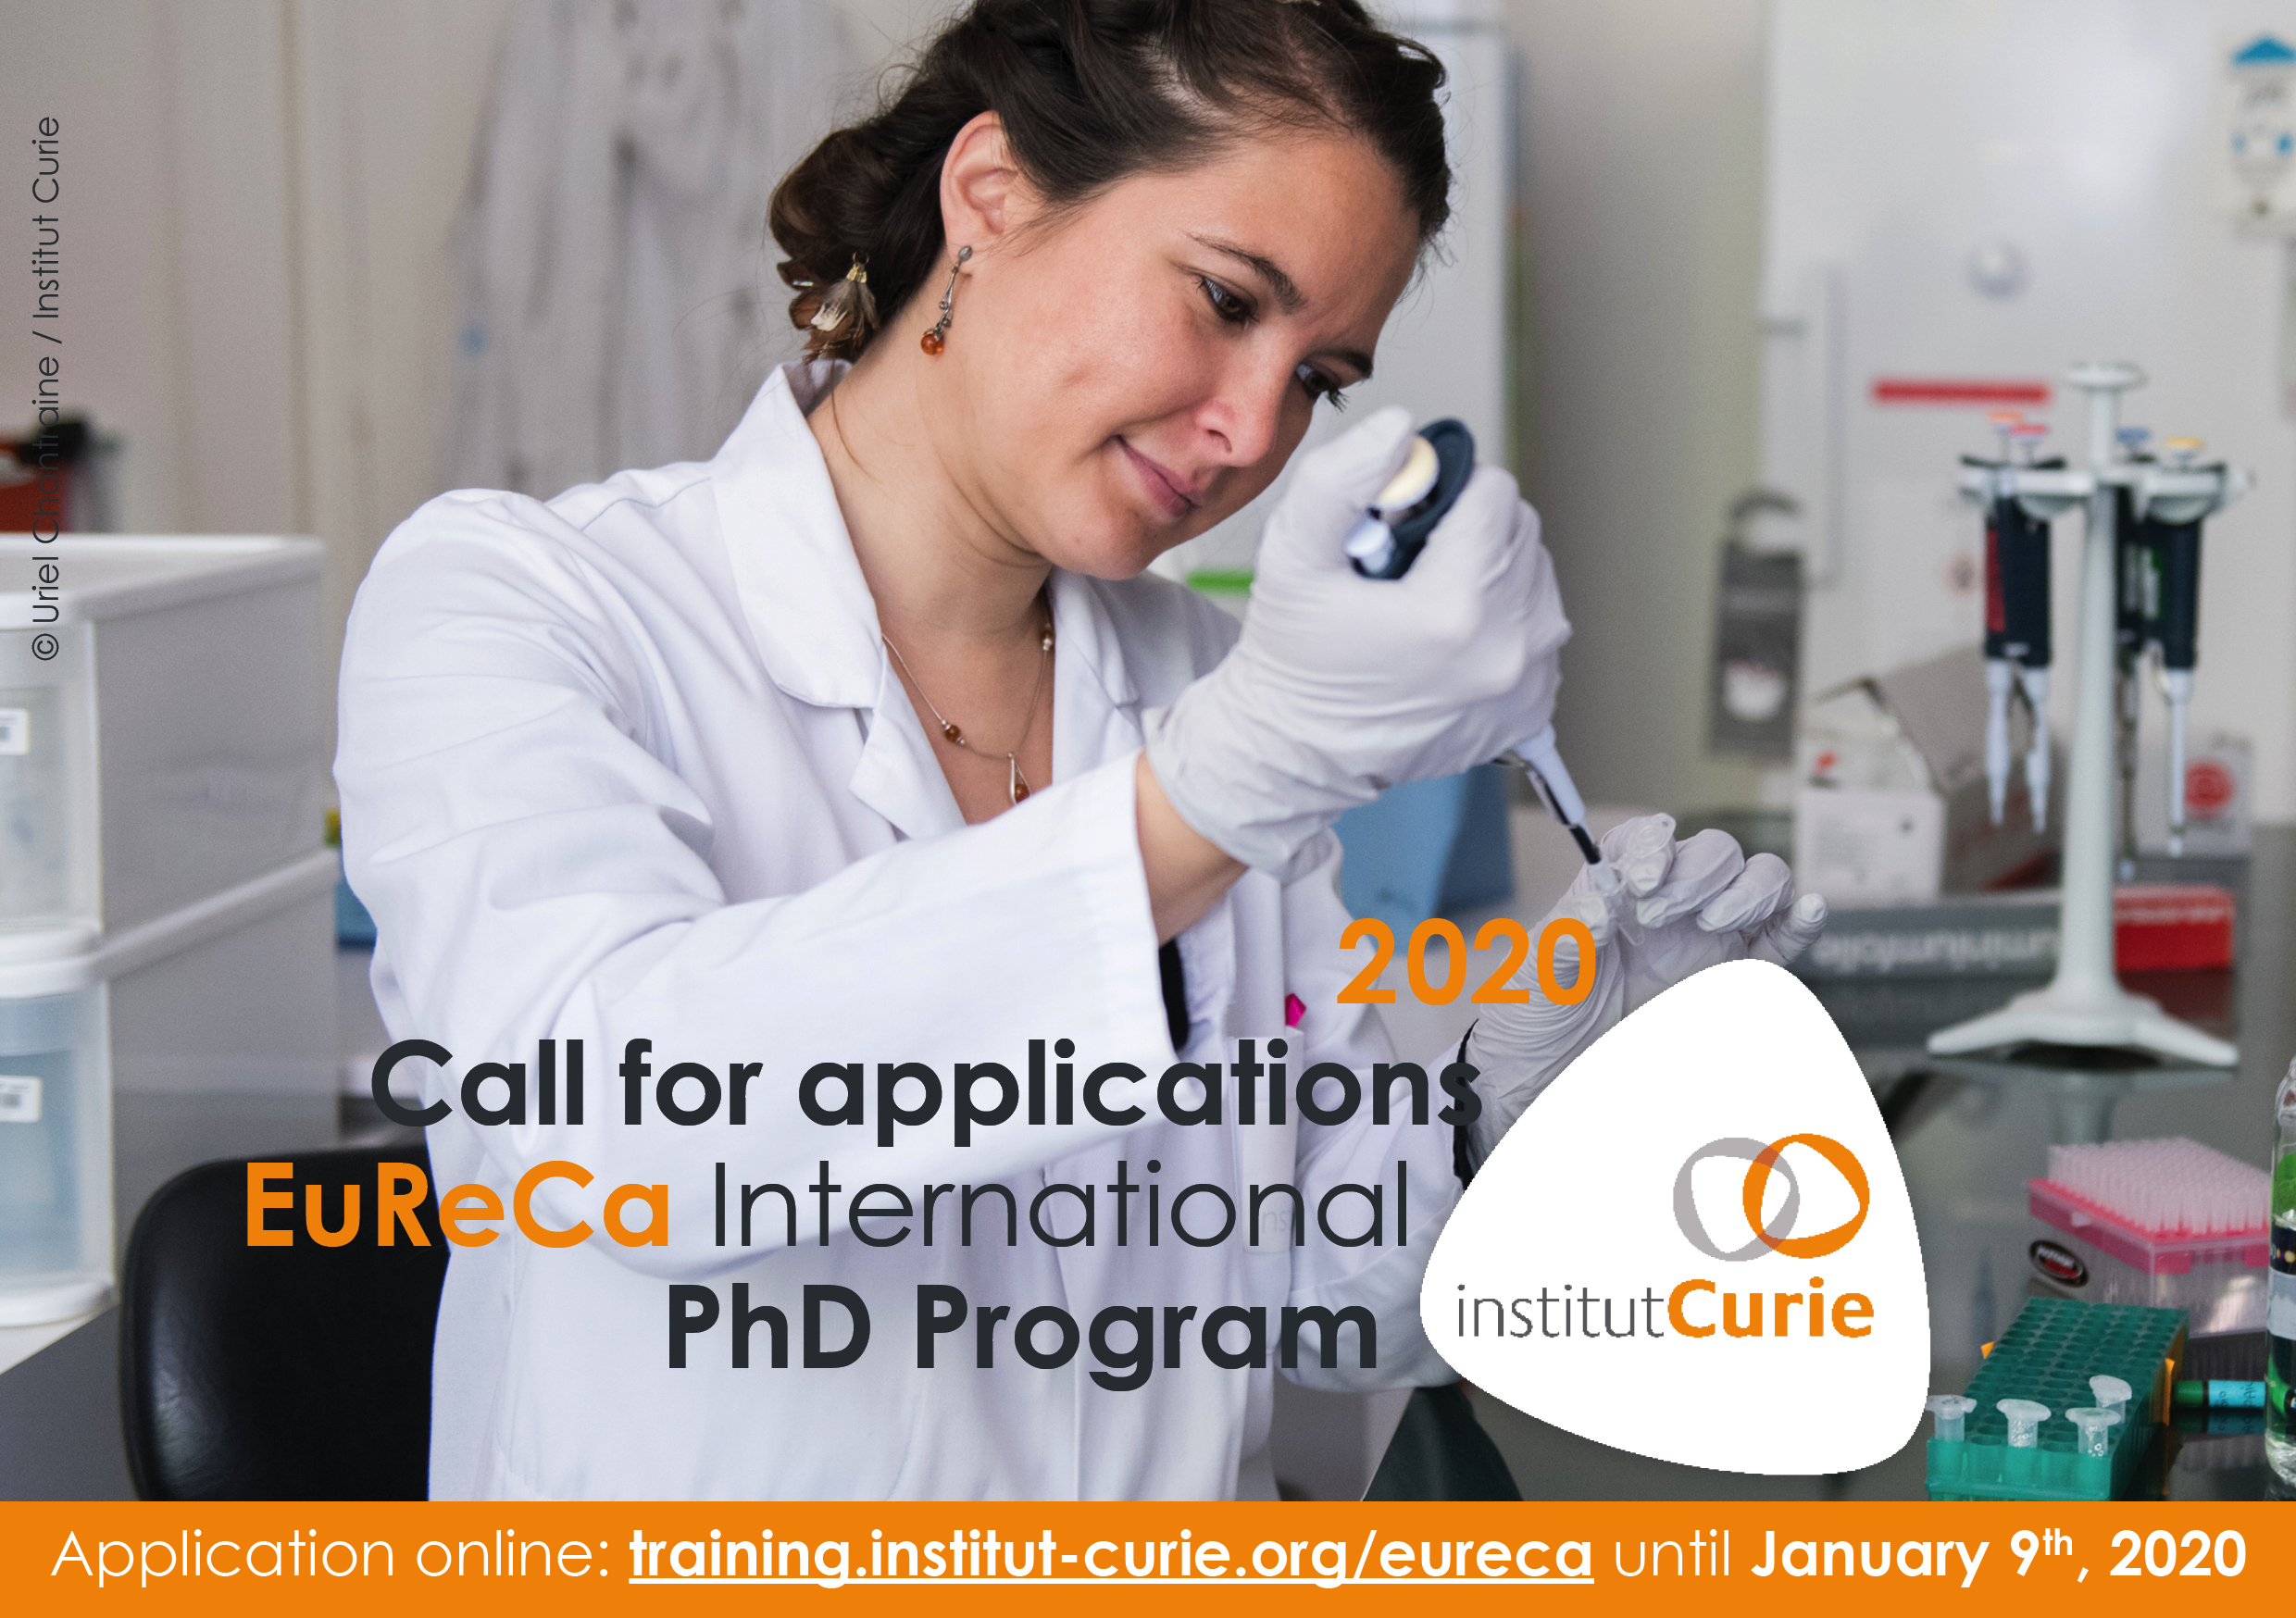 Institut Curie Europe Research & Care (EuReCa) International PhD Program 2020